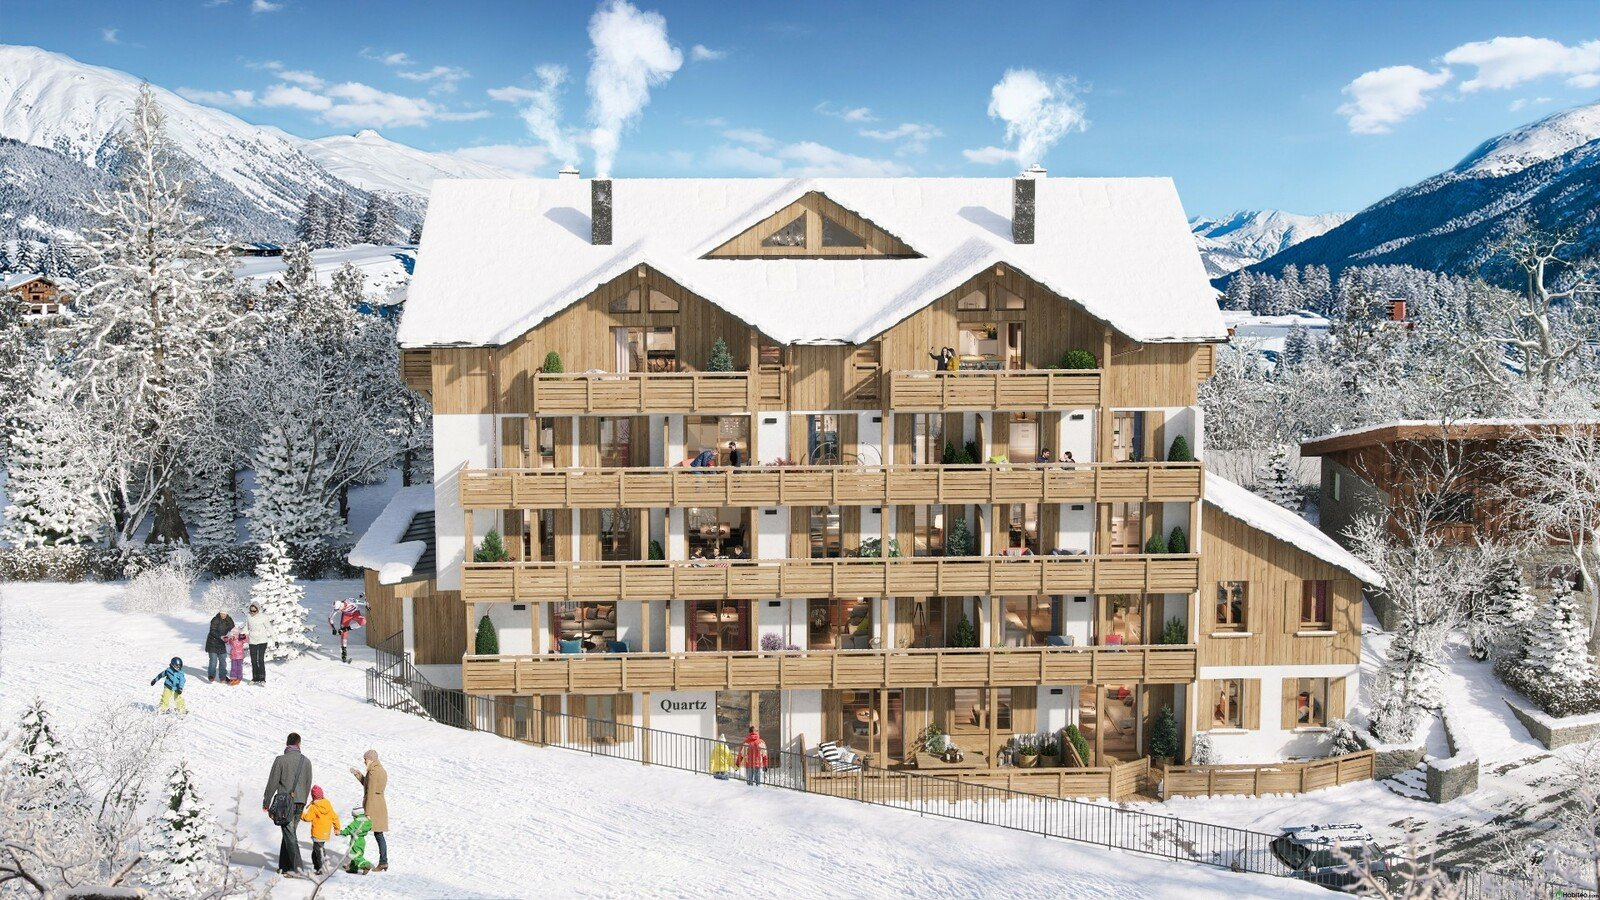 New development of apartments in the heart of L'Alpe d'Huez